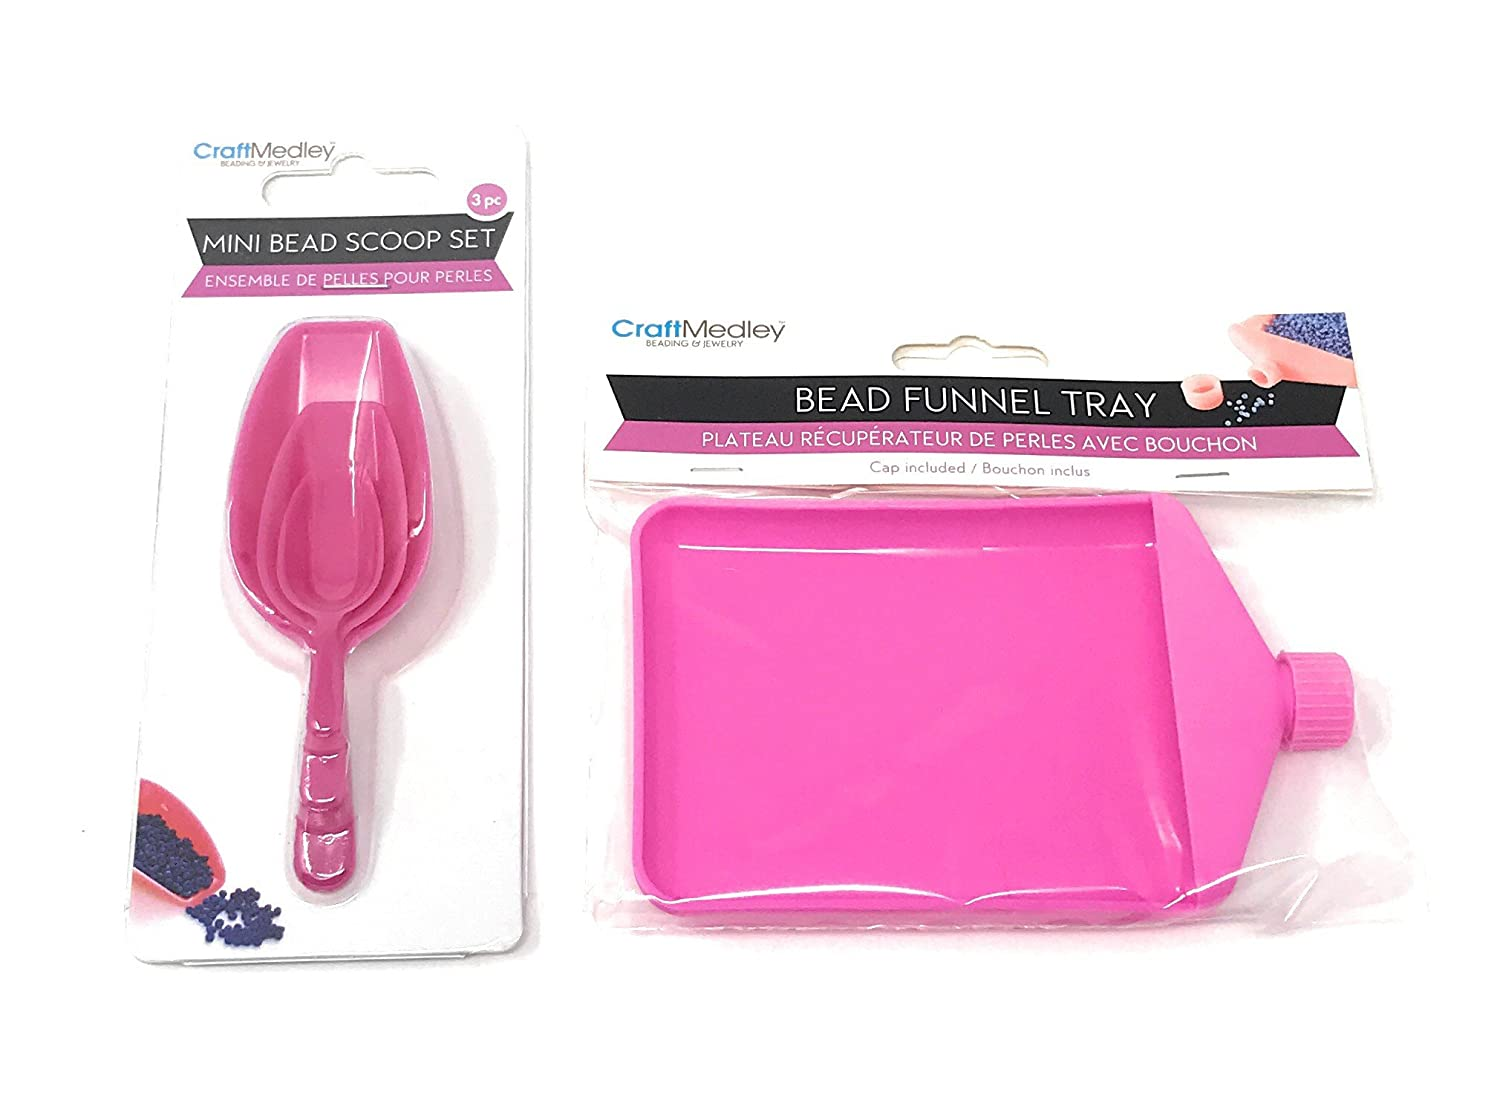 Bead Funnel Tray W/Cap and BT256 Beading & Jewelry Tool, Scoop-It Mini Bead Scoop Set, 3-Piece by Craft Medley